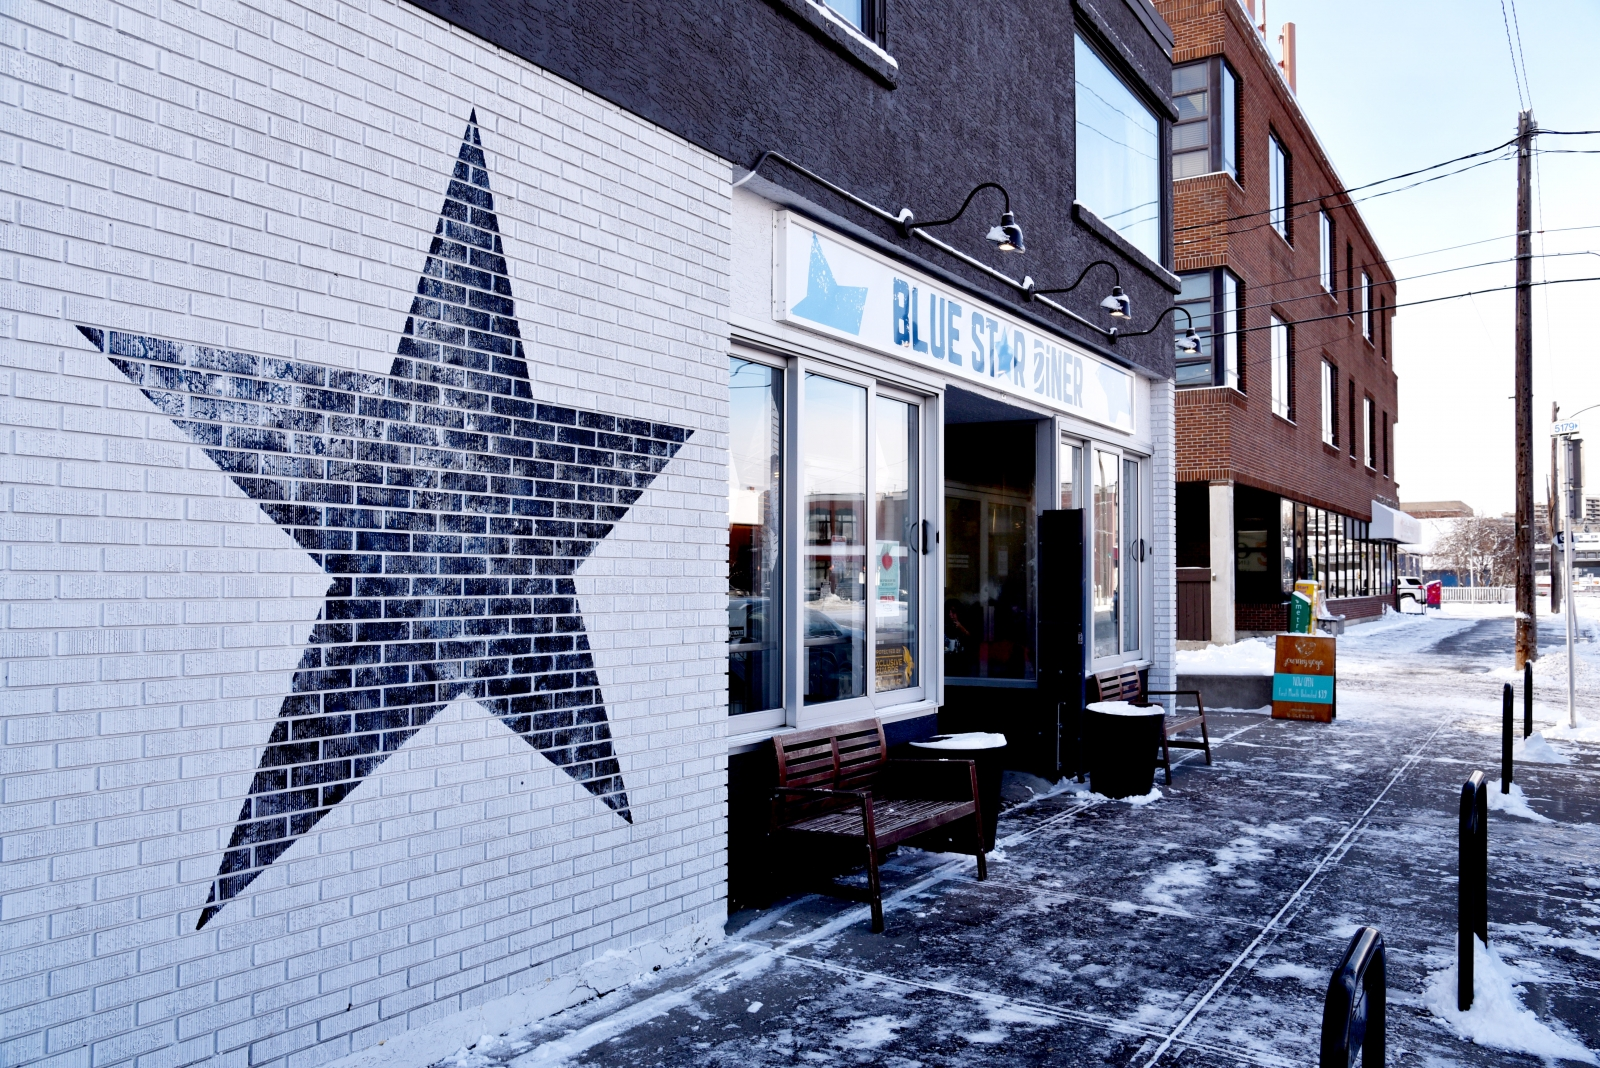 Blue Star Diner is one of the city's favourite places for brunch.